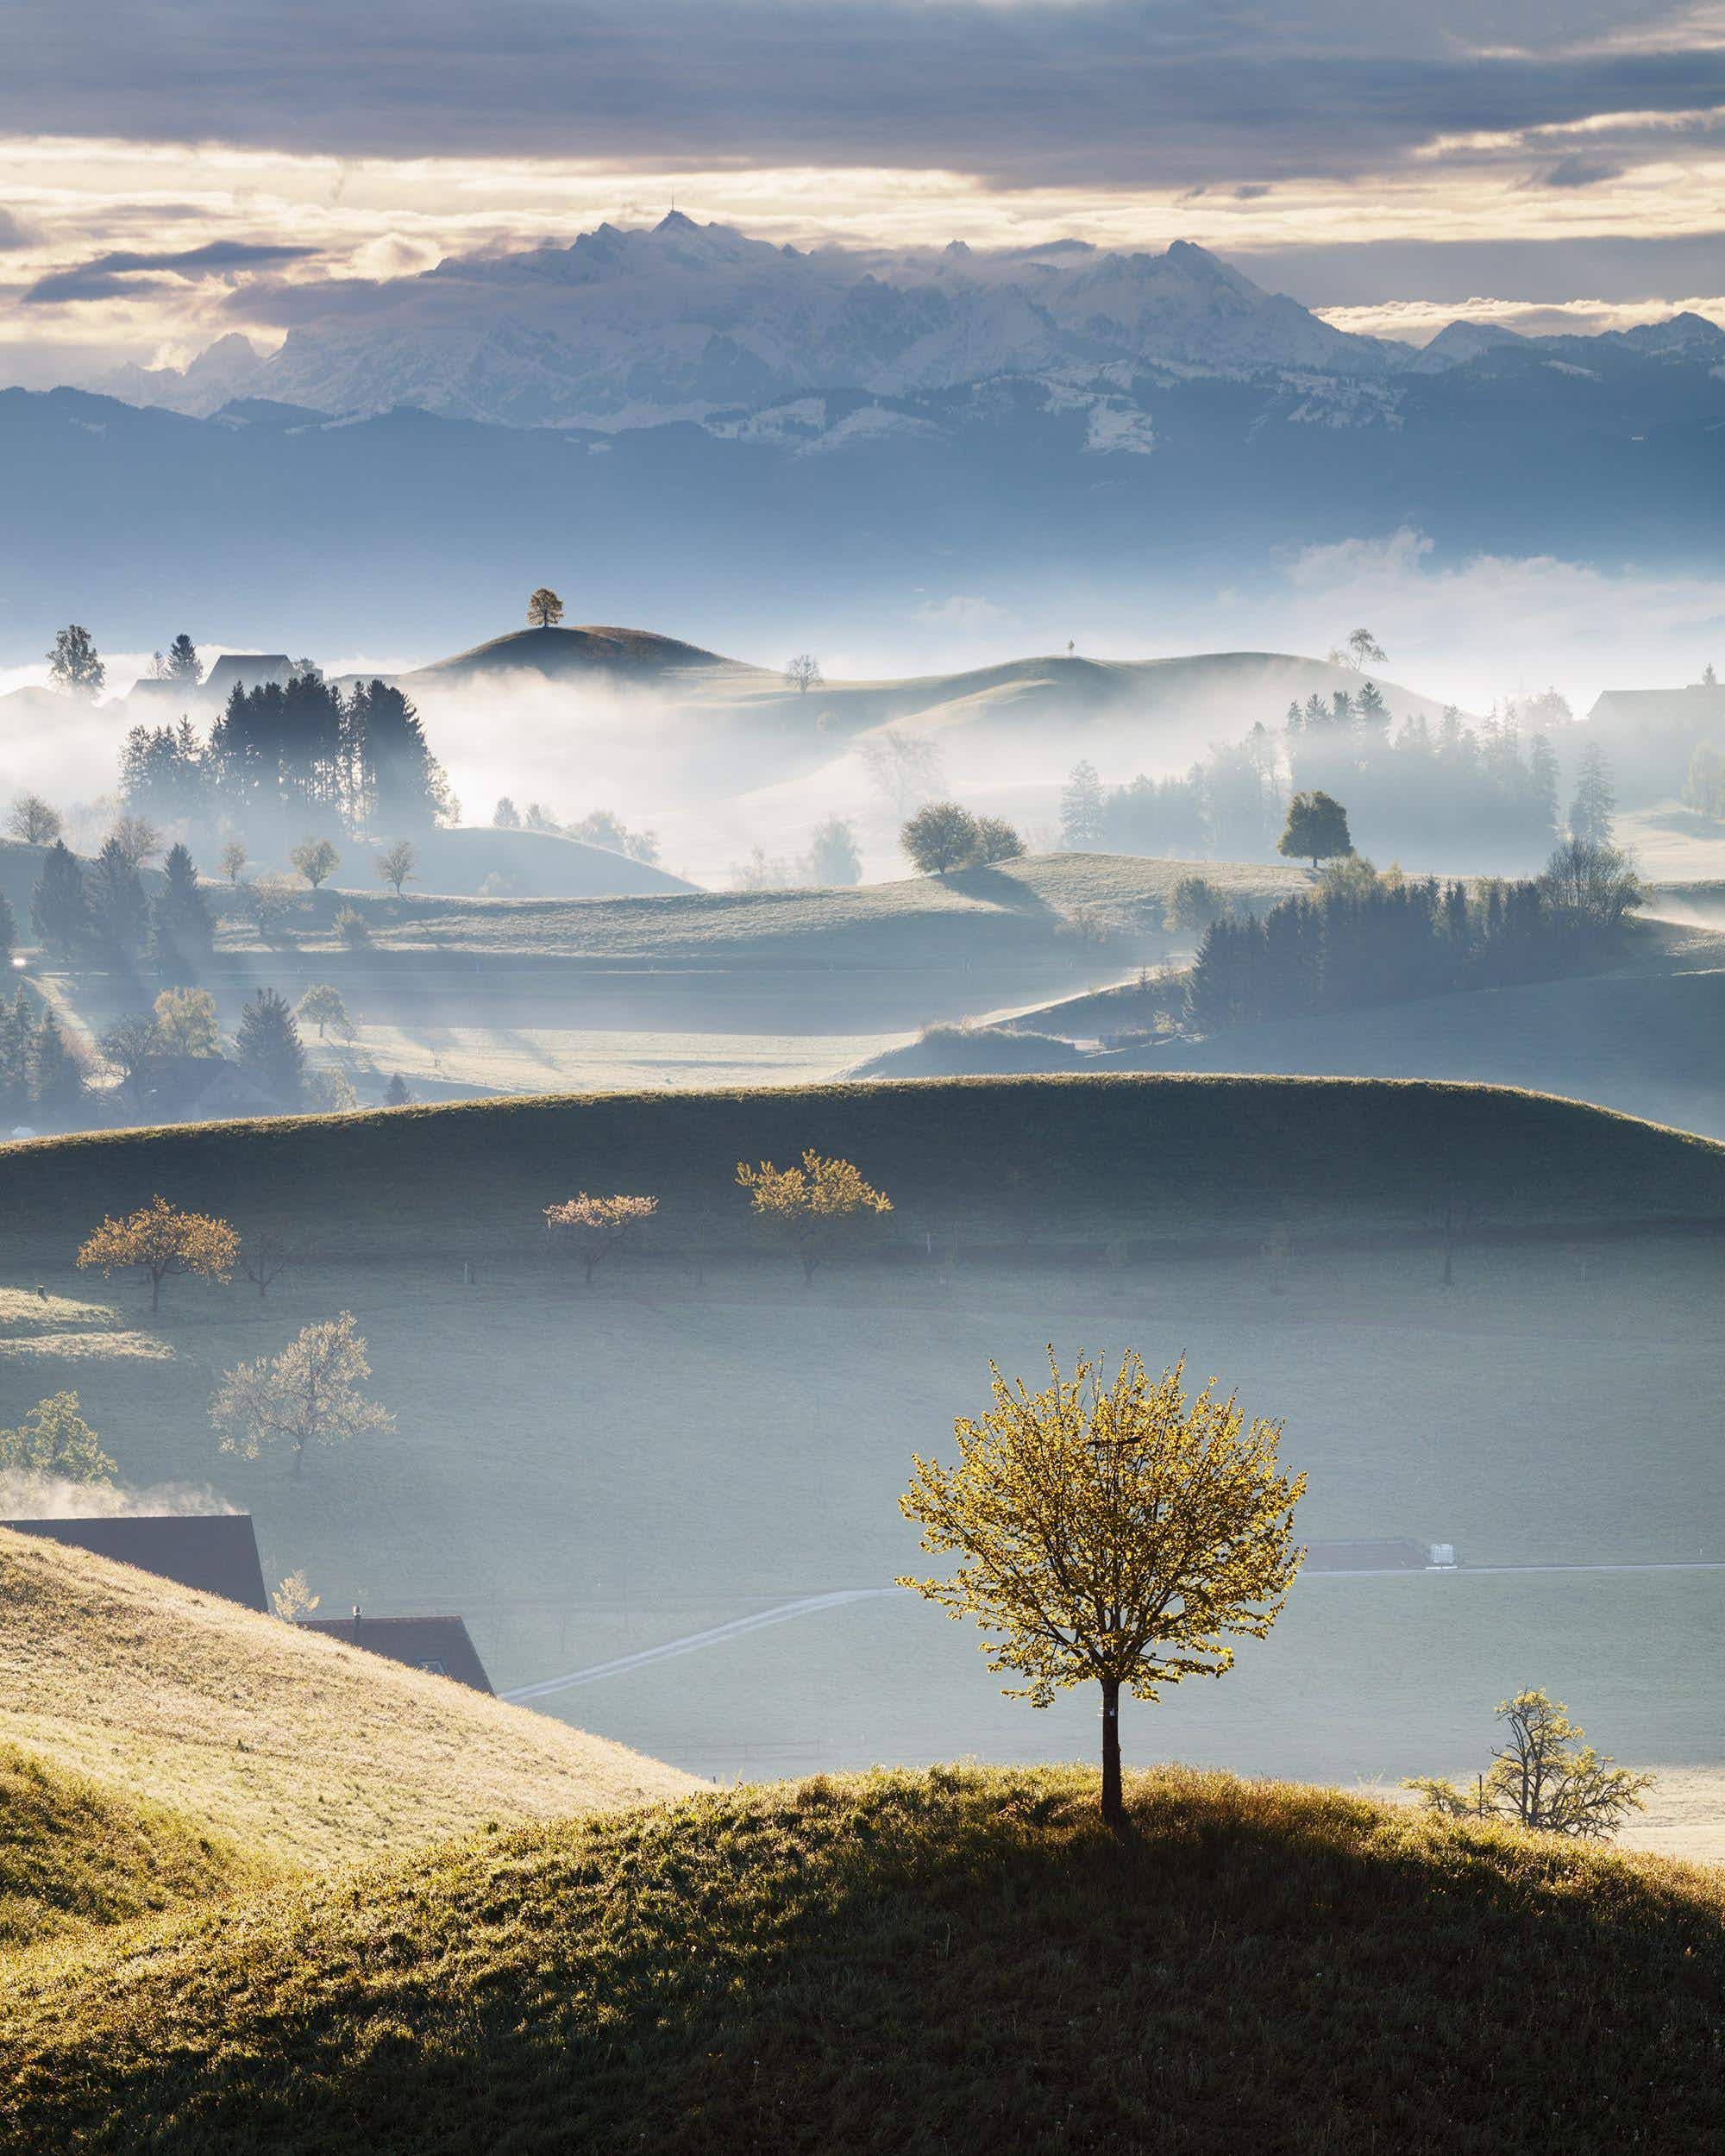 These magical photos of Switzerland look just like Tolkien's Shire